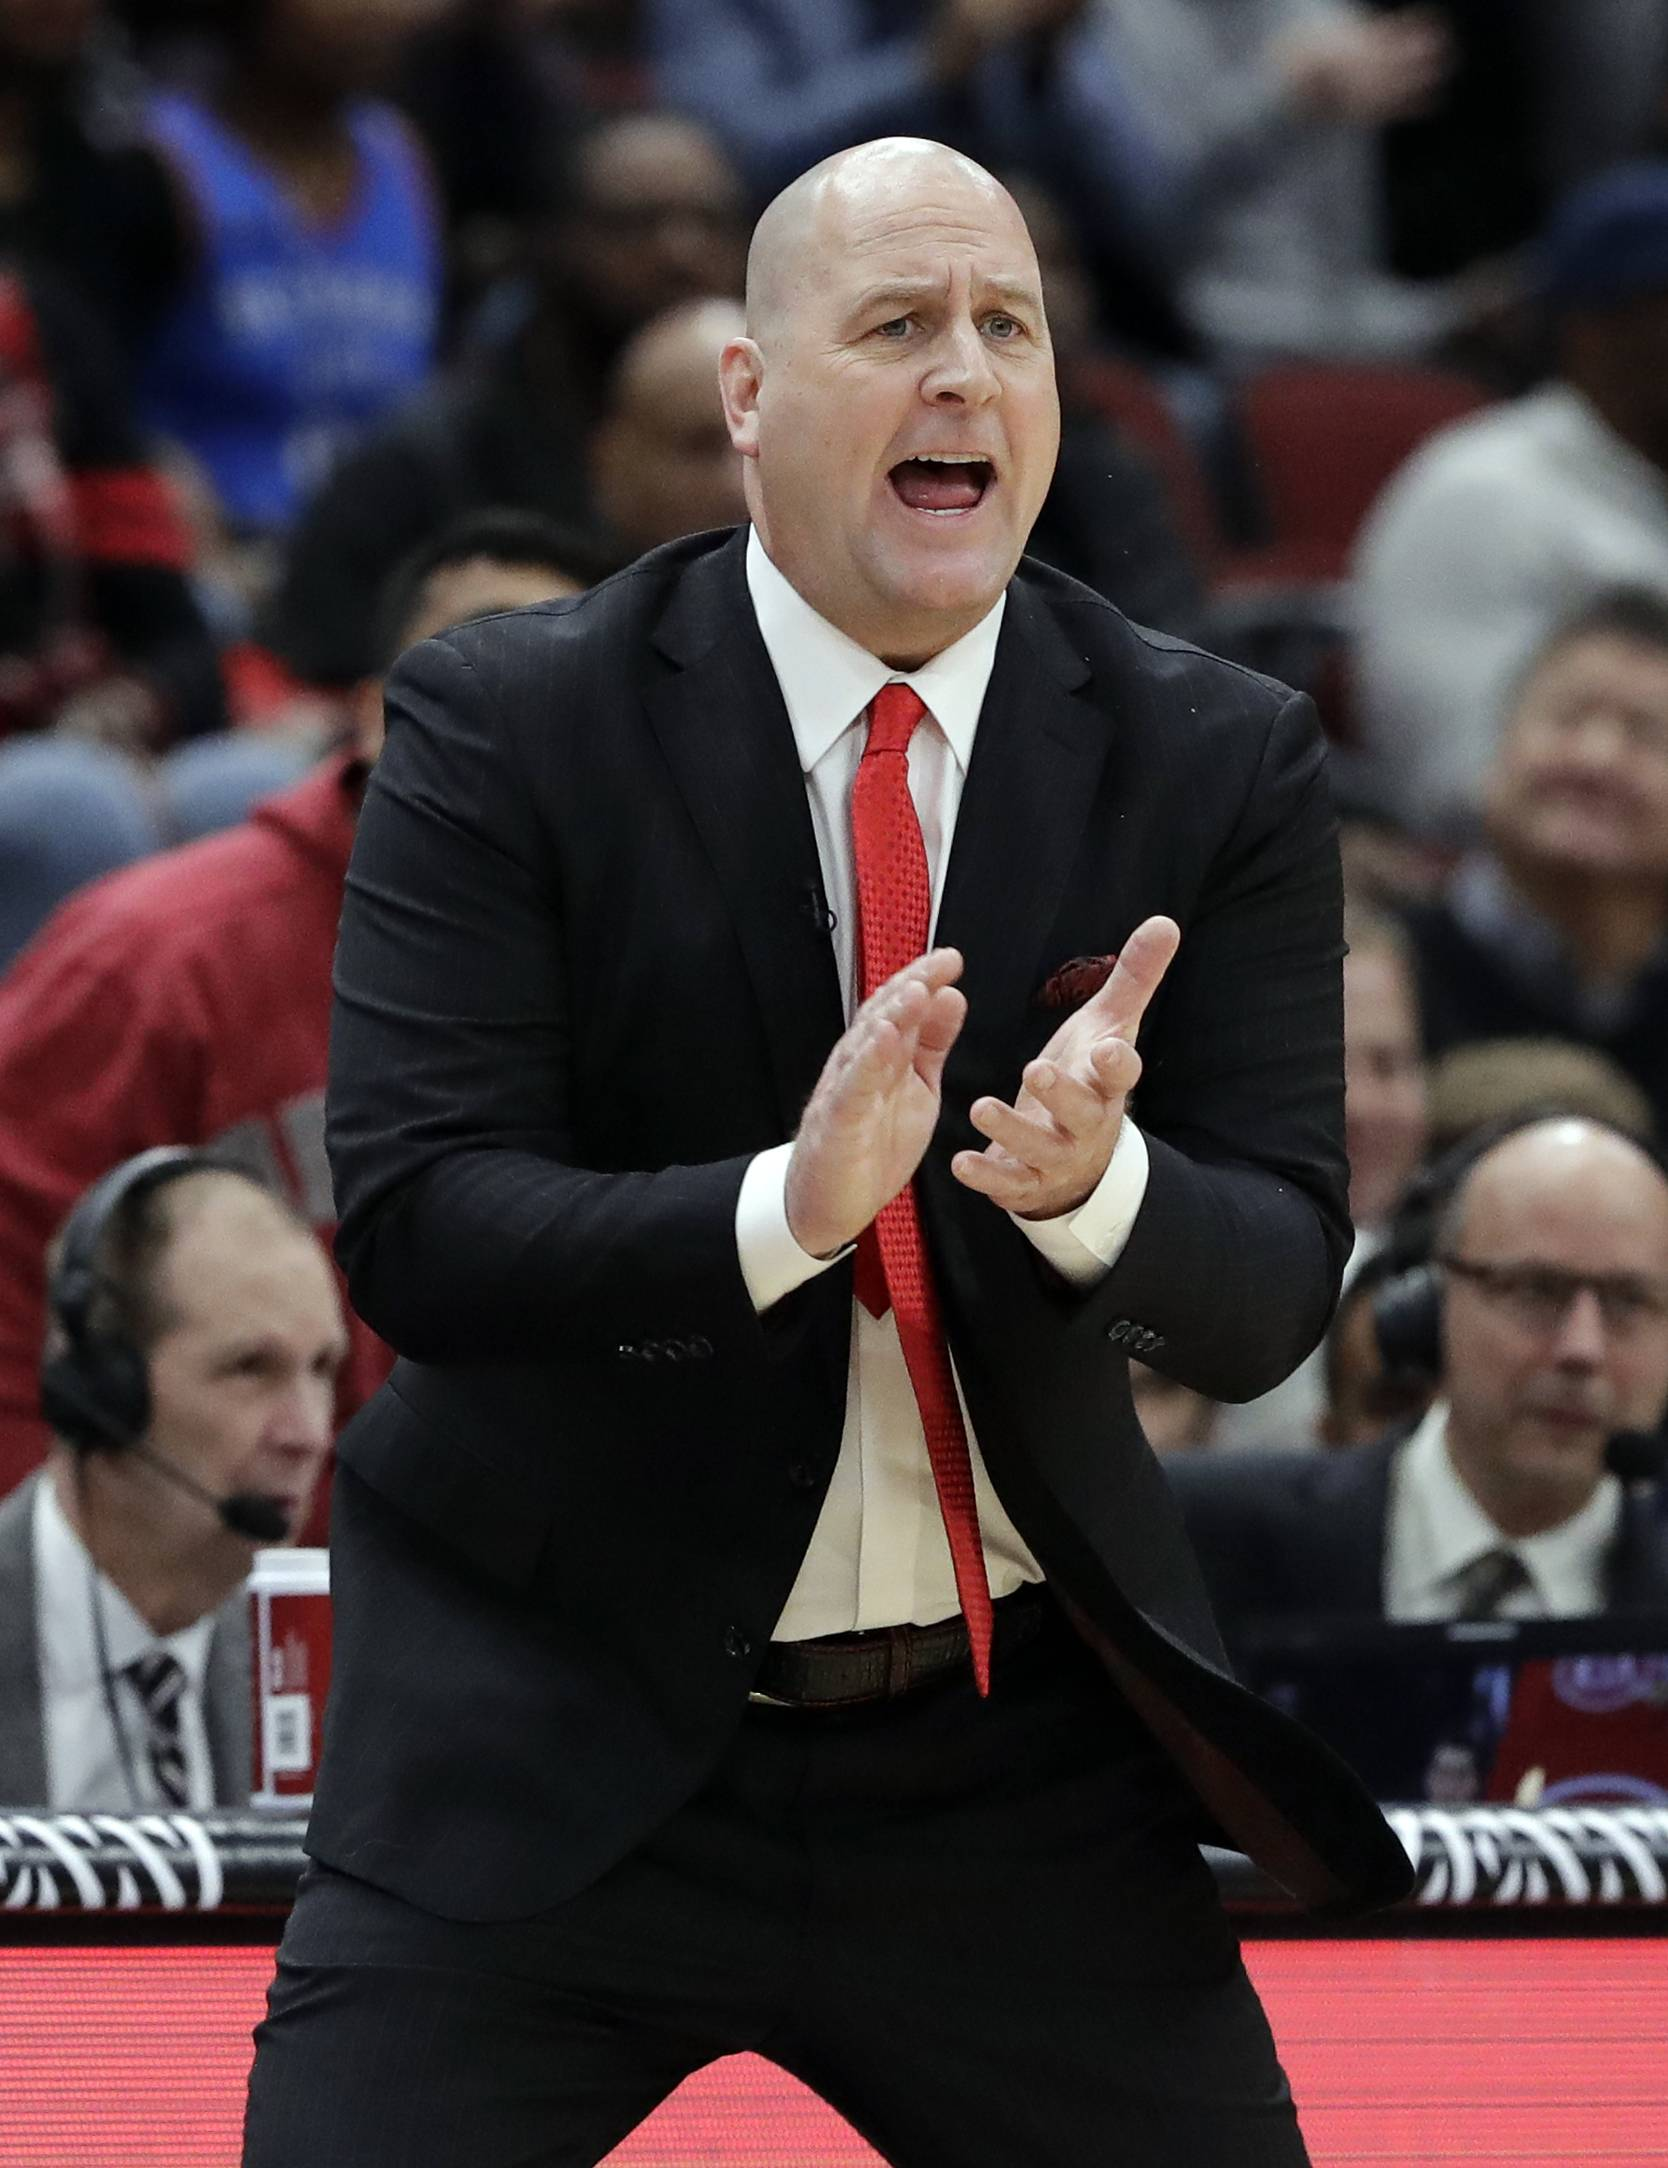 It's awkward, but Boylen apprecated support from Hoiberg